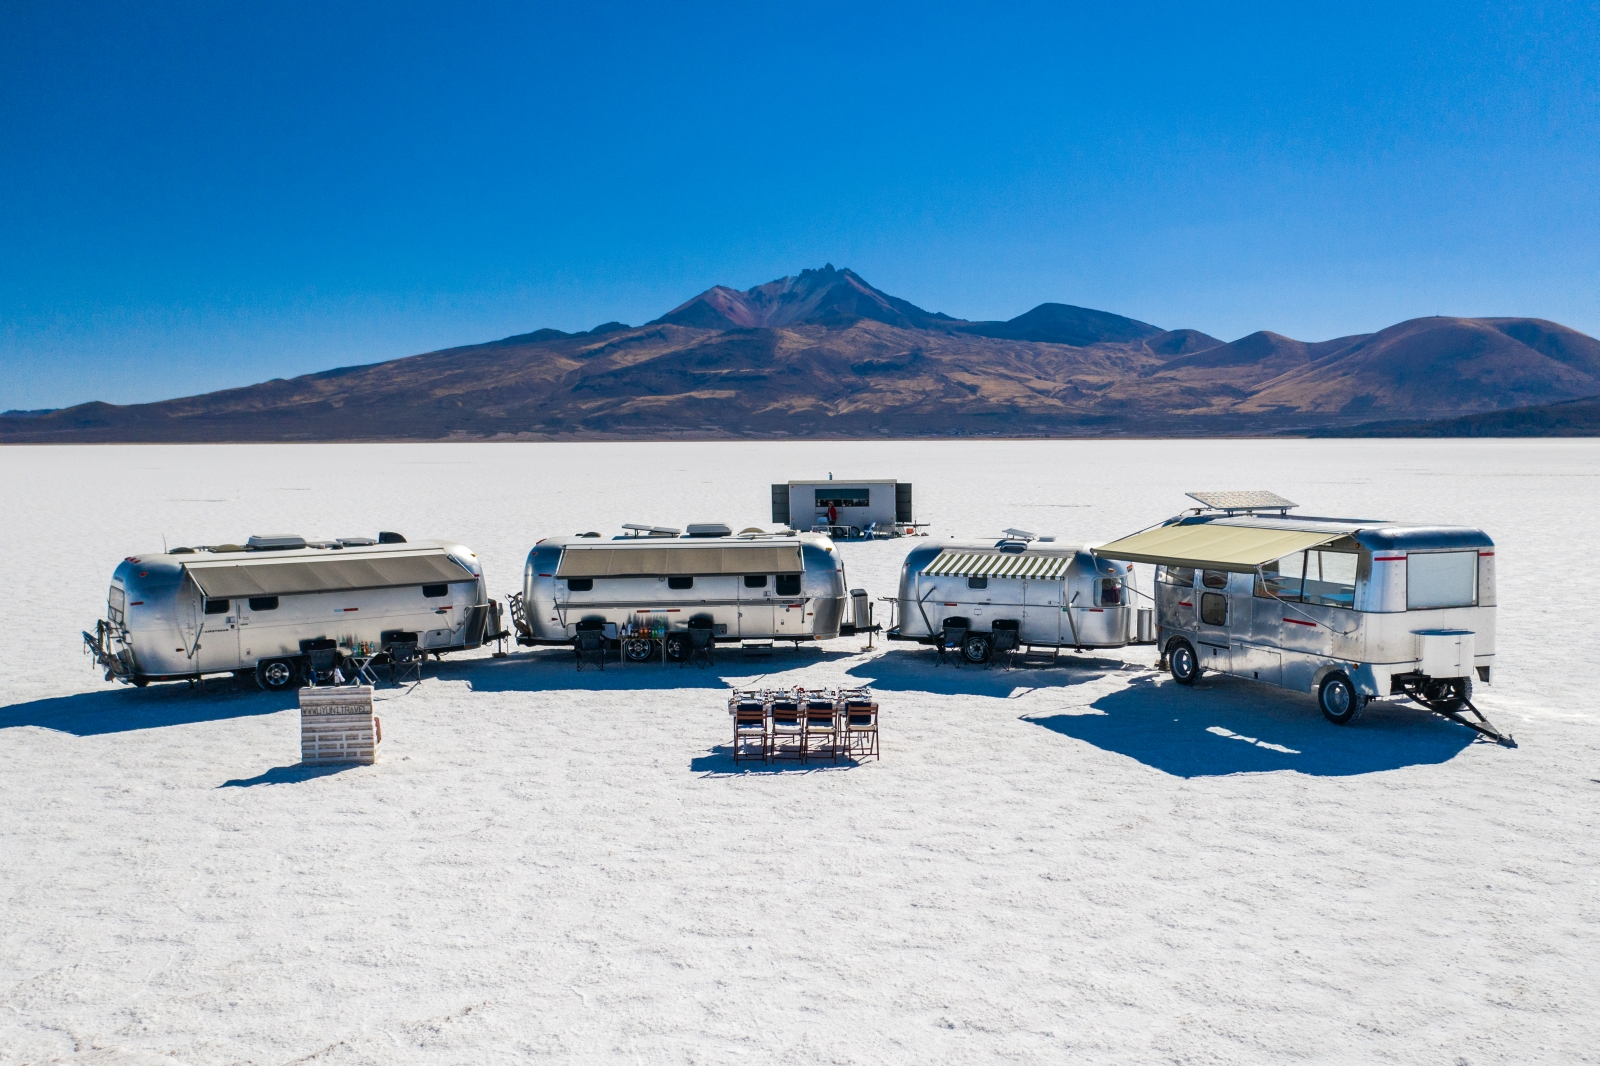 Full view of Deluxe Airstream Camper in Bolivia Salt Flats